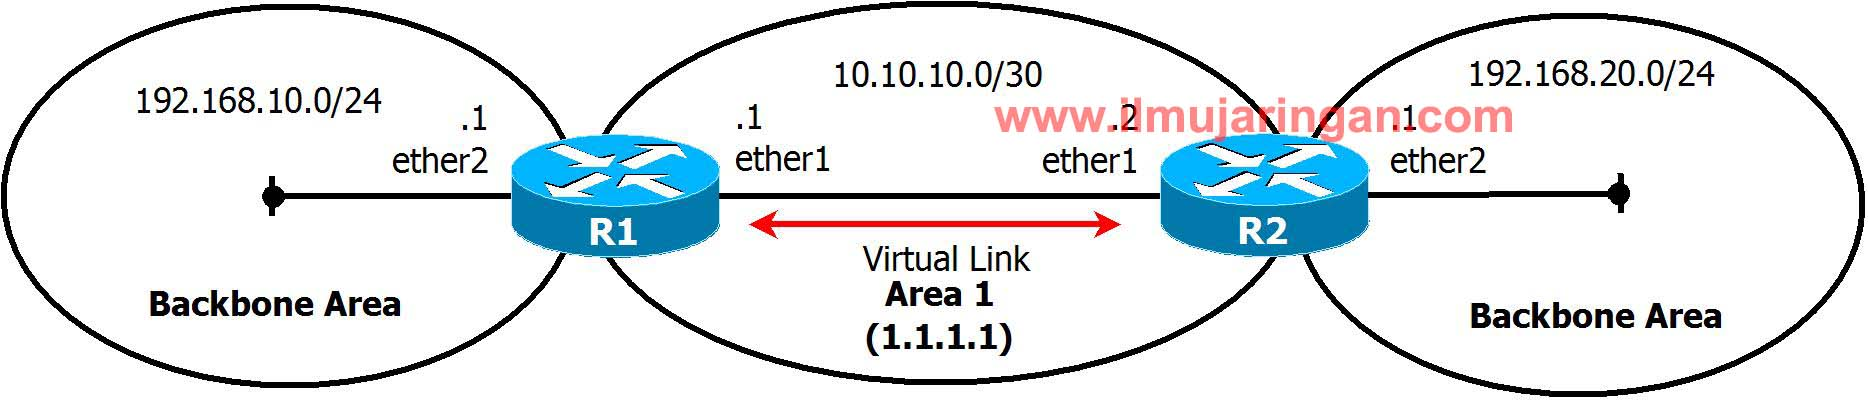 ospf_link_type_04_wm